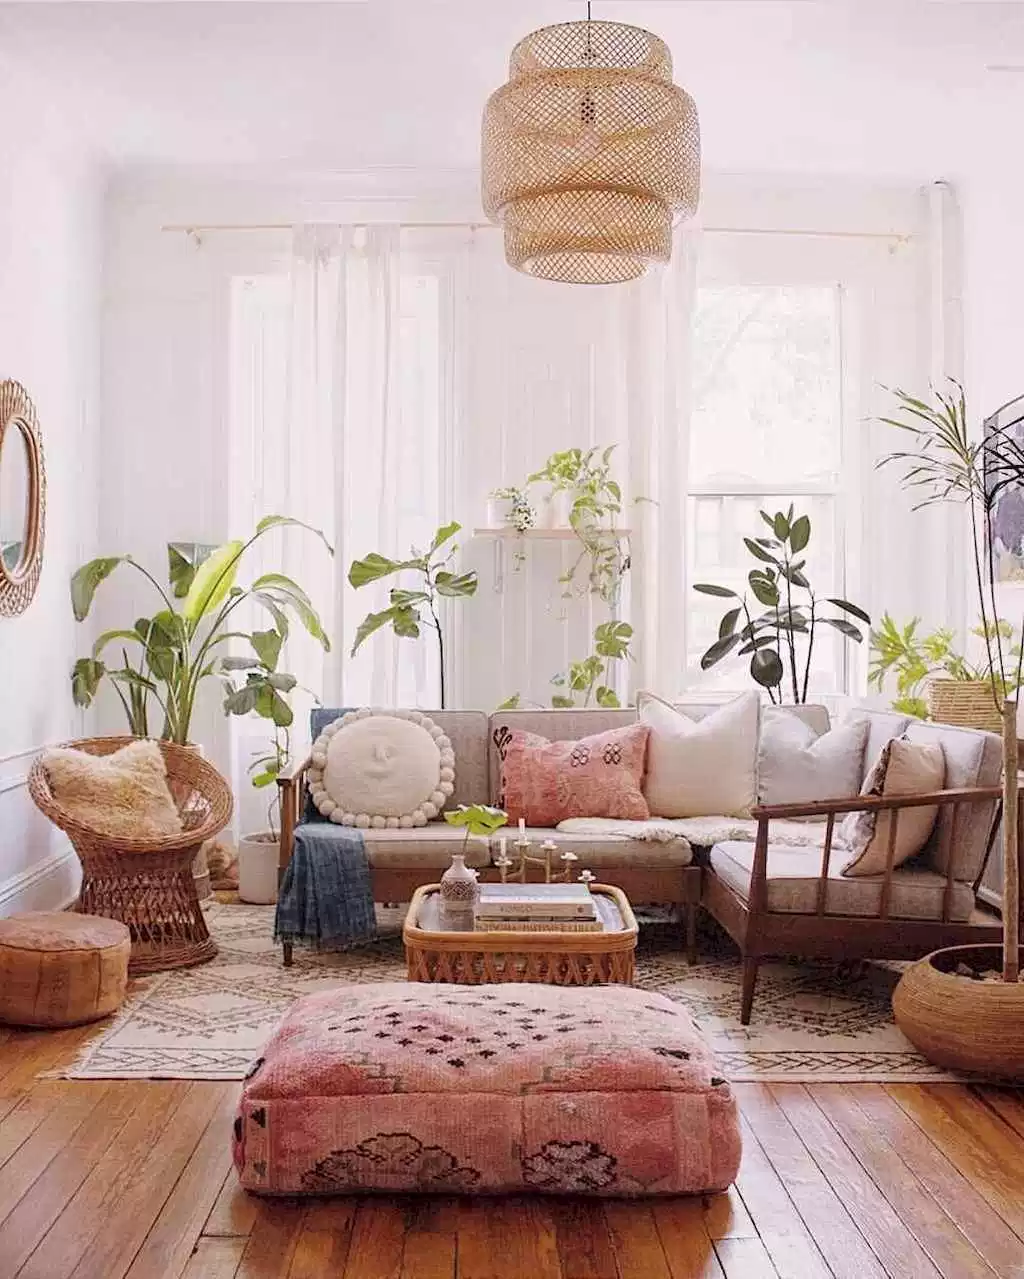 42 cozy bohemian living room decor ideas #bohemian